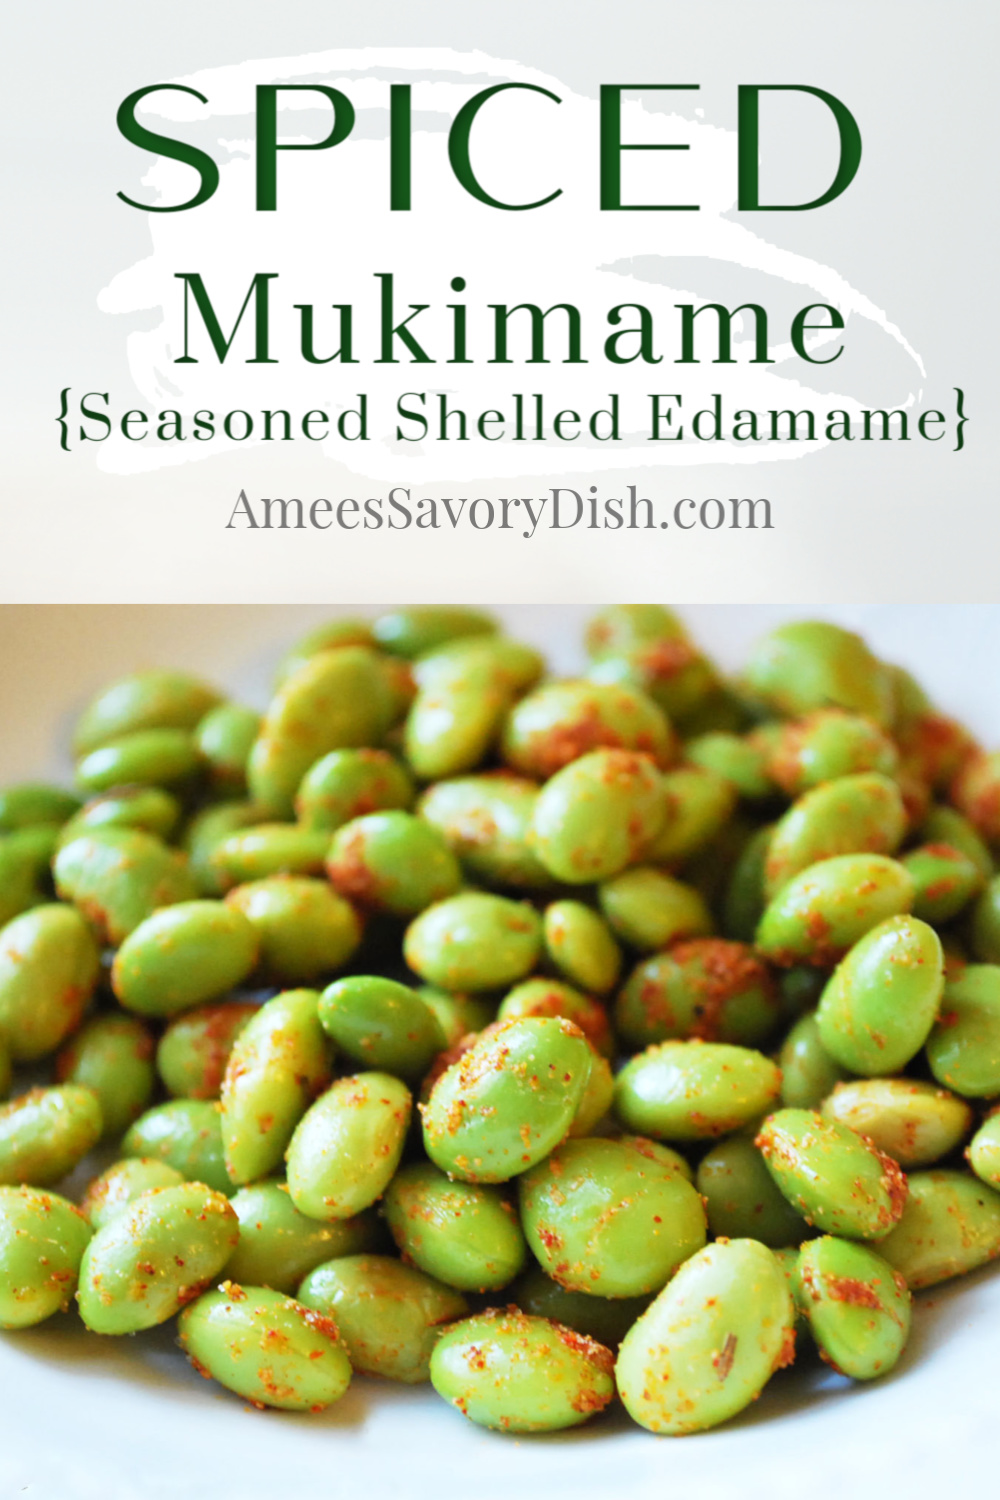 A recipe for spiced mukimame (seasoned shelled edamame) made with homemade seasoned salt and steamed frozen mukimame.  An easy and nutritious appetizer or snack! via @Ameecooks